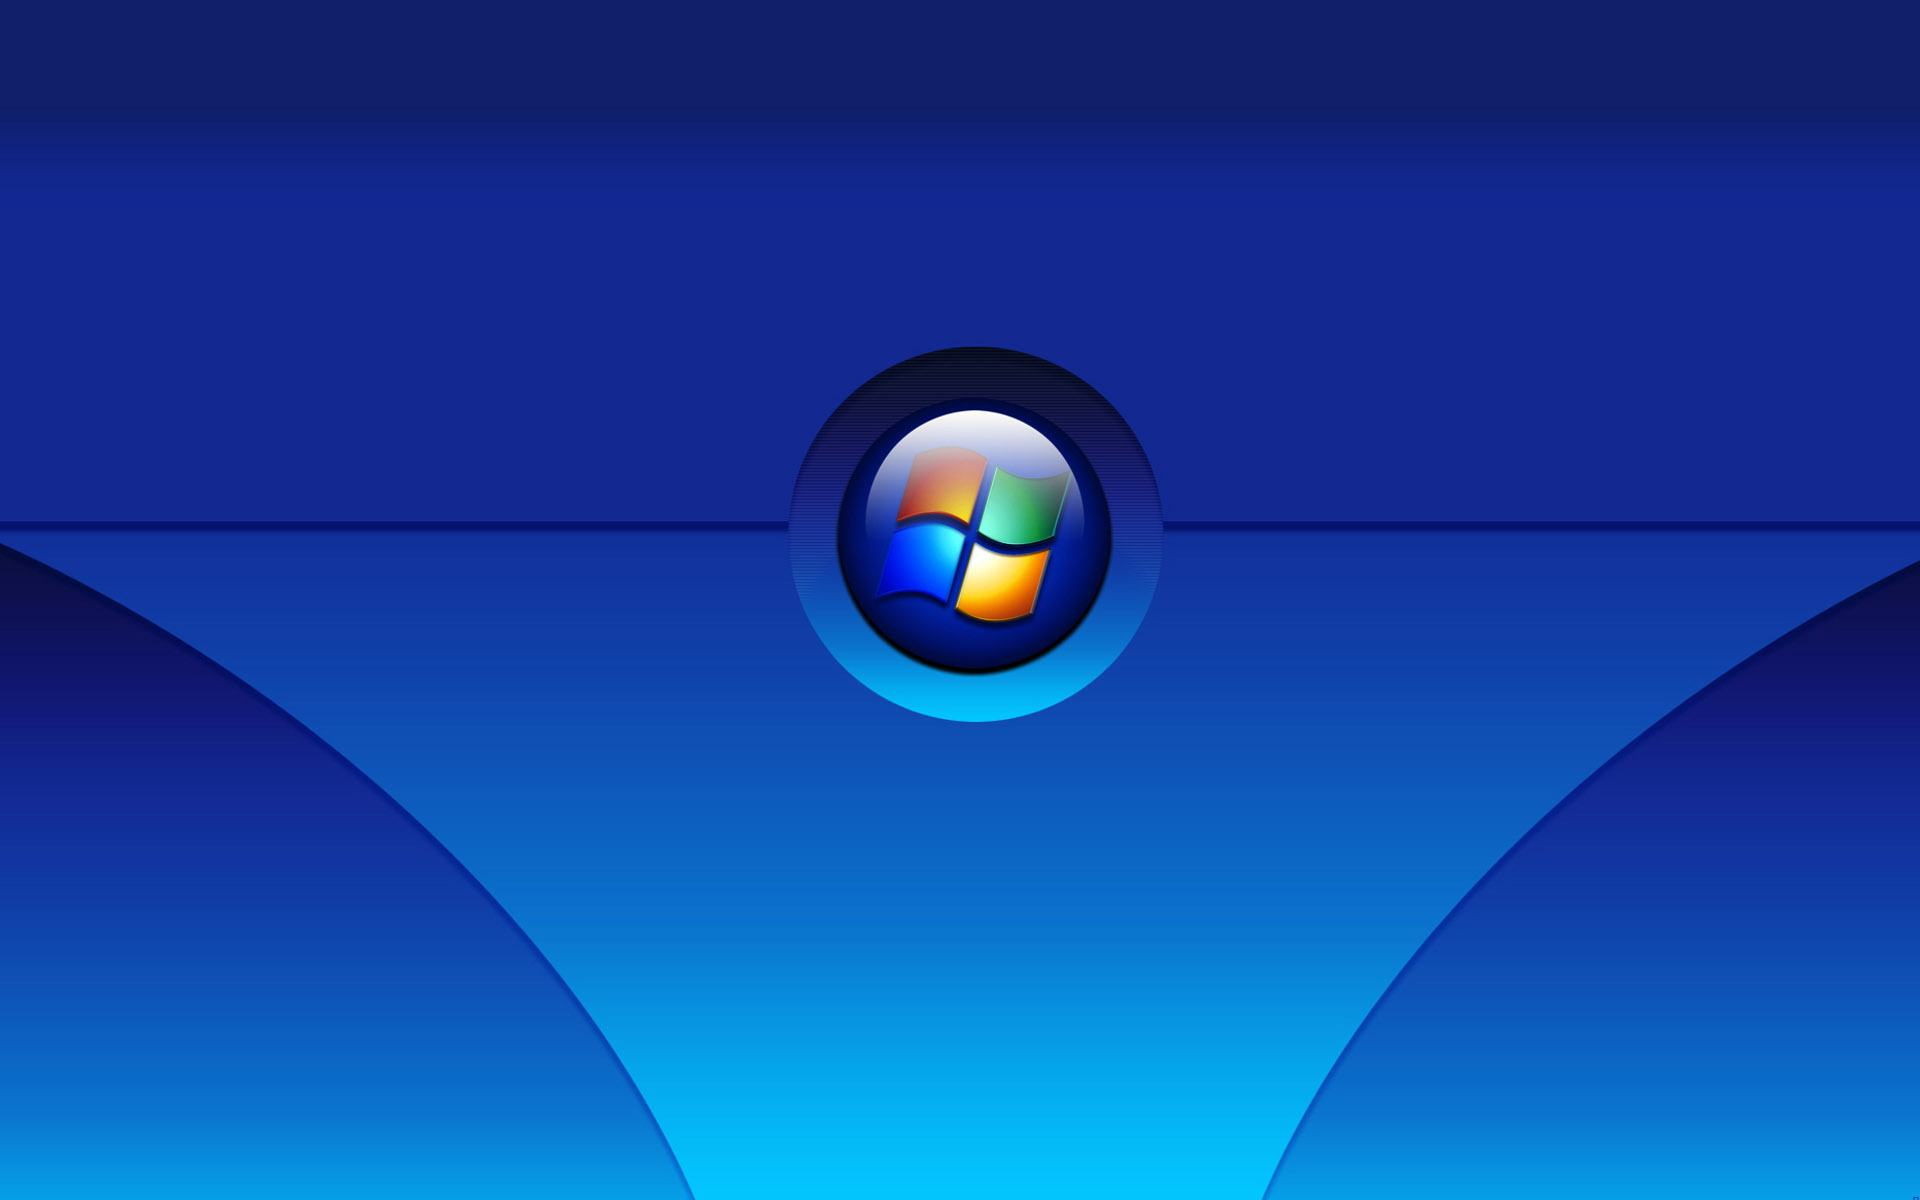 Обои Windows Vista (107) 1920x1200